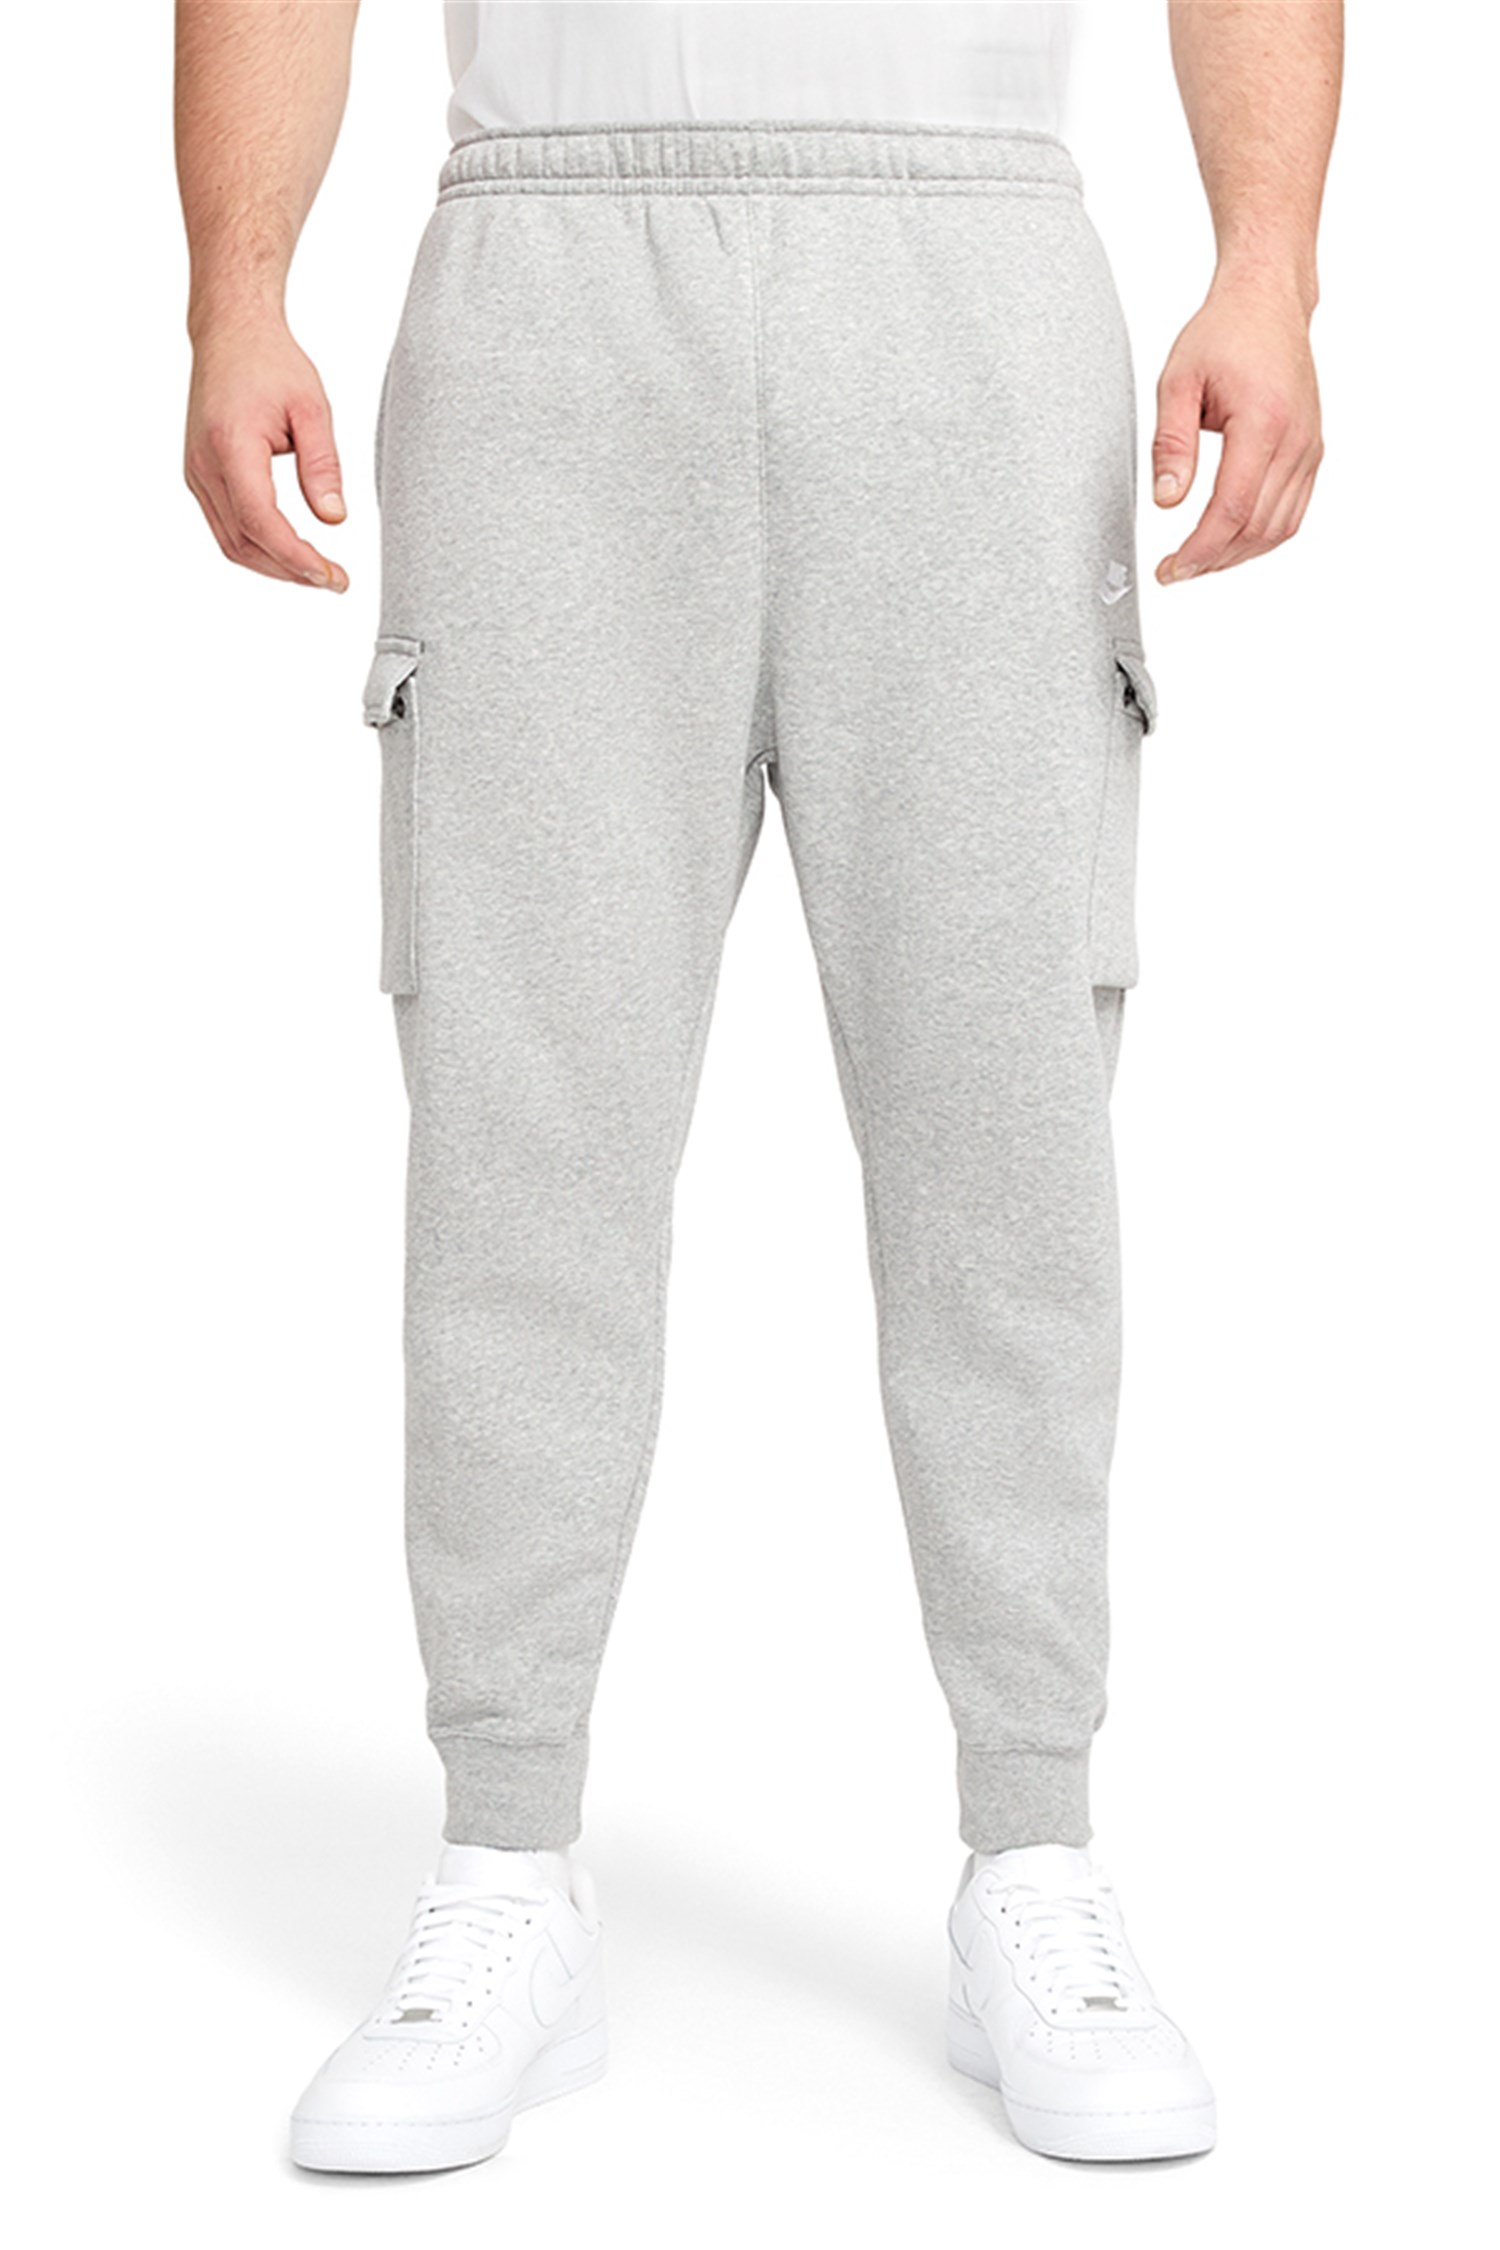 Nike Trousers Suit Man